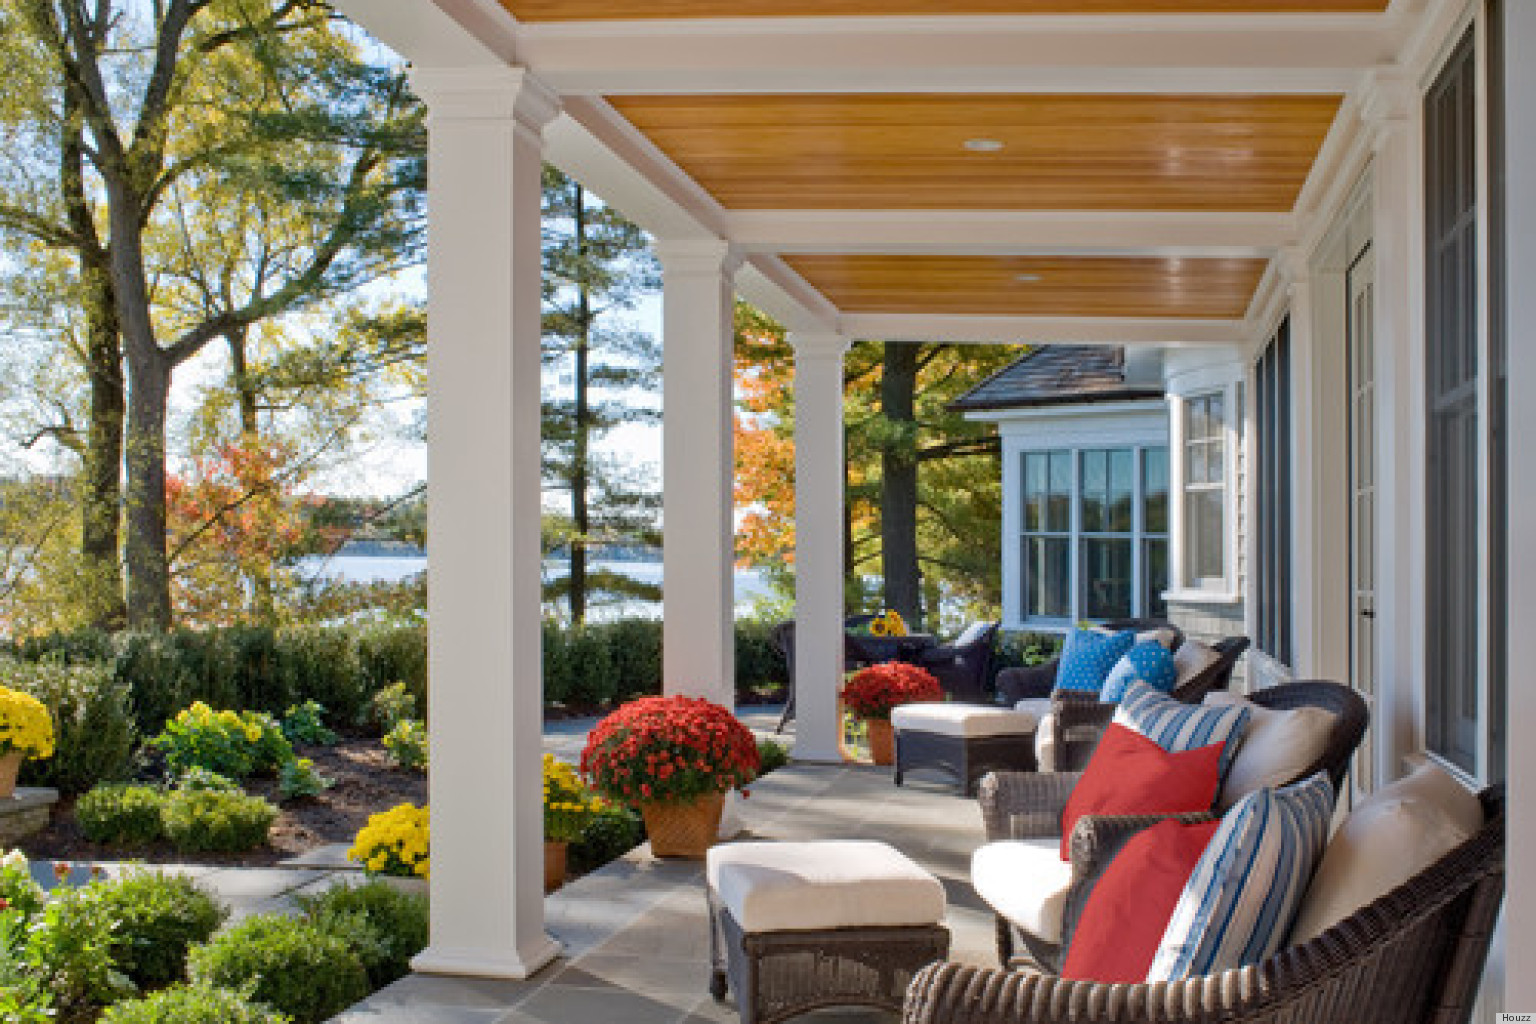 11 Pretty Porches That Will Have You Feeling Relaxed In No ... on Pretty Patio Ideas id=75284